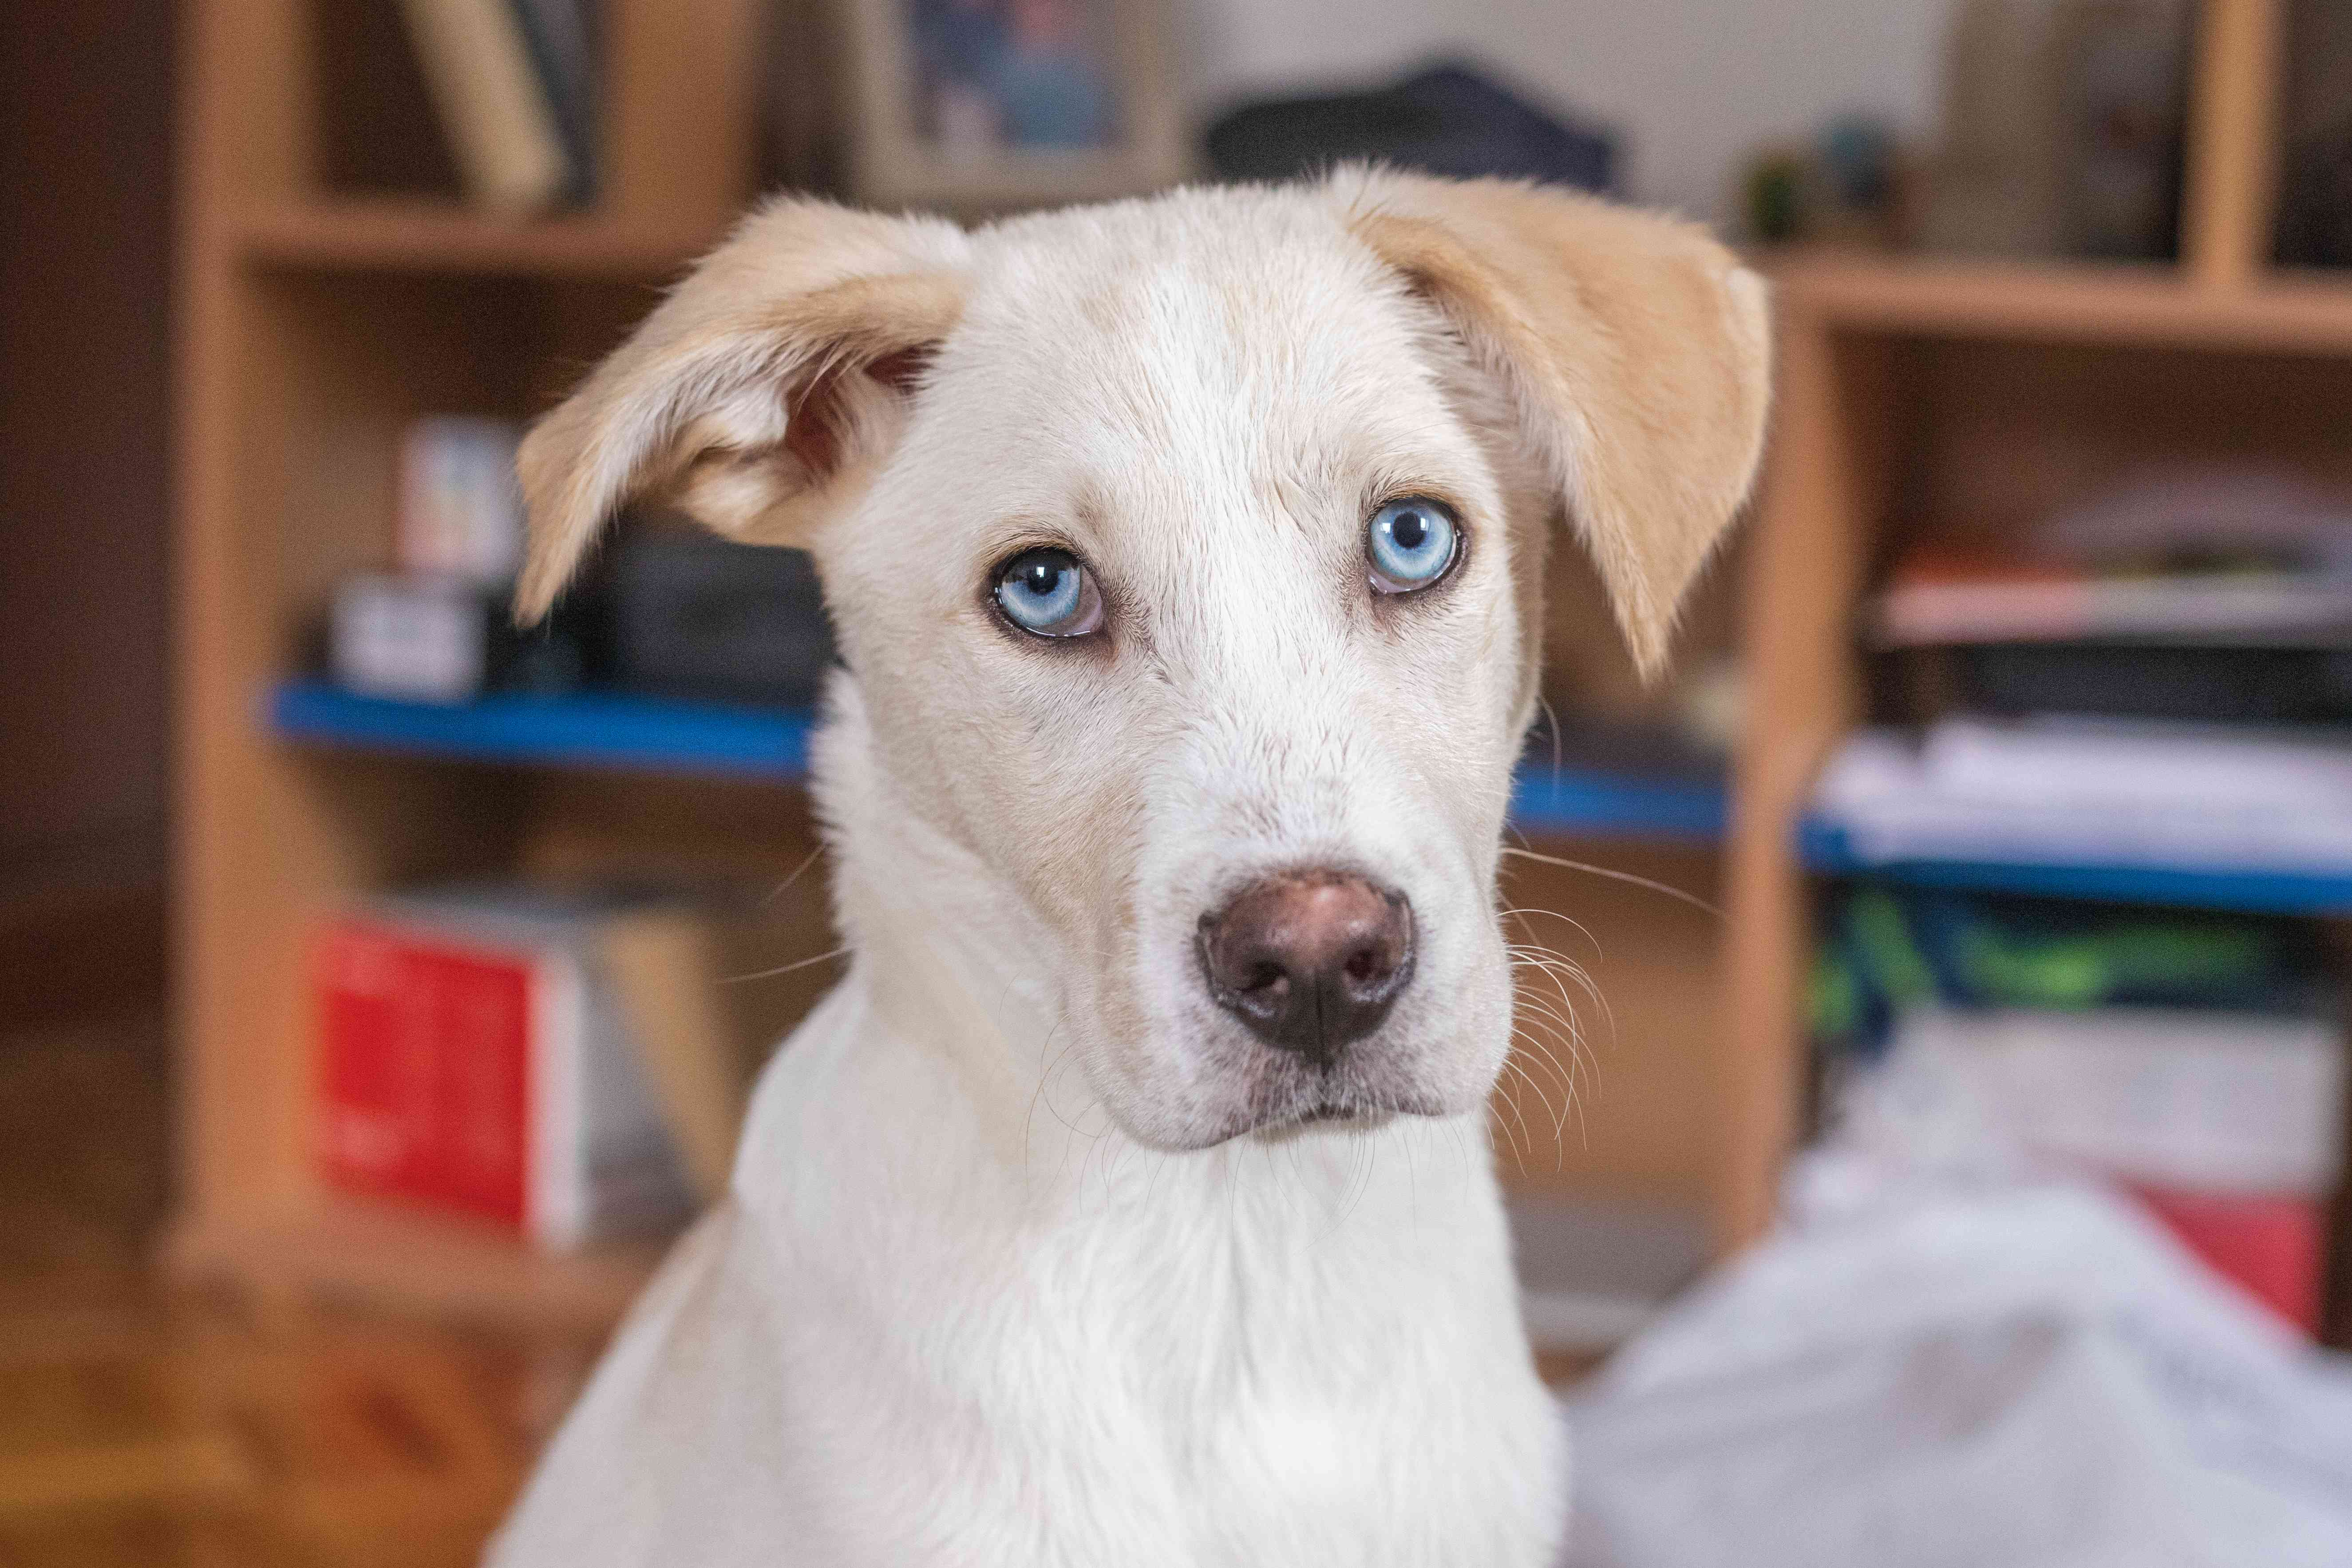 white dog with blue eyes stares at camera inside house